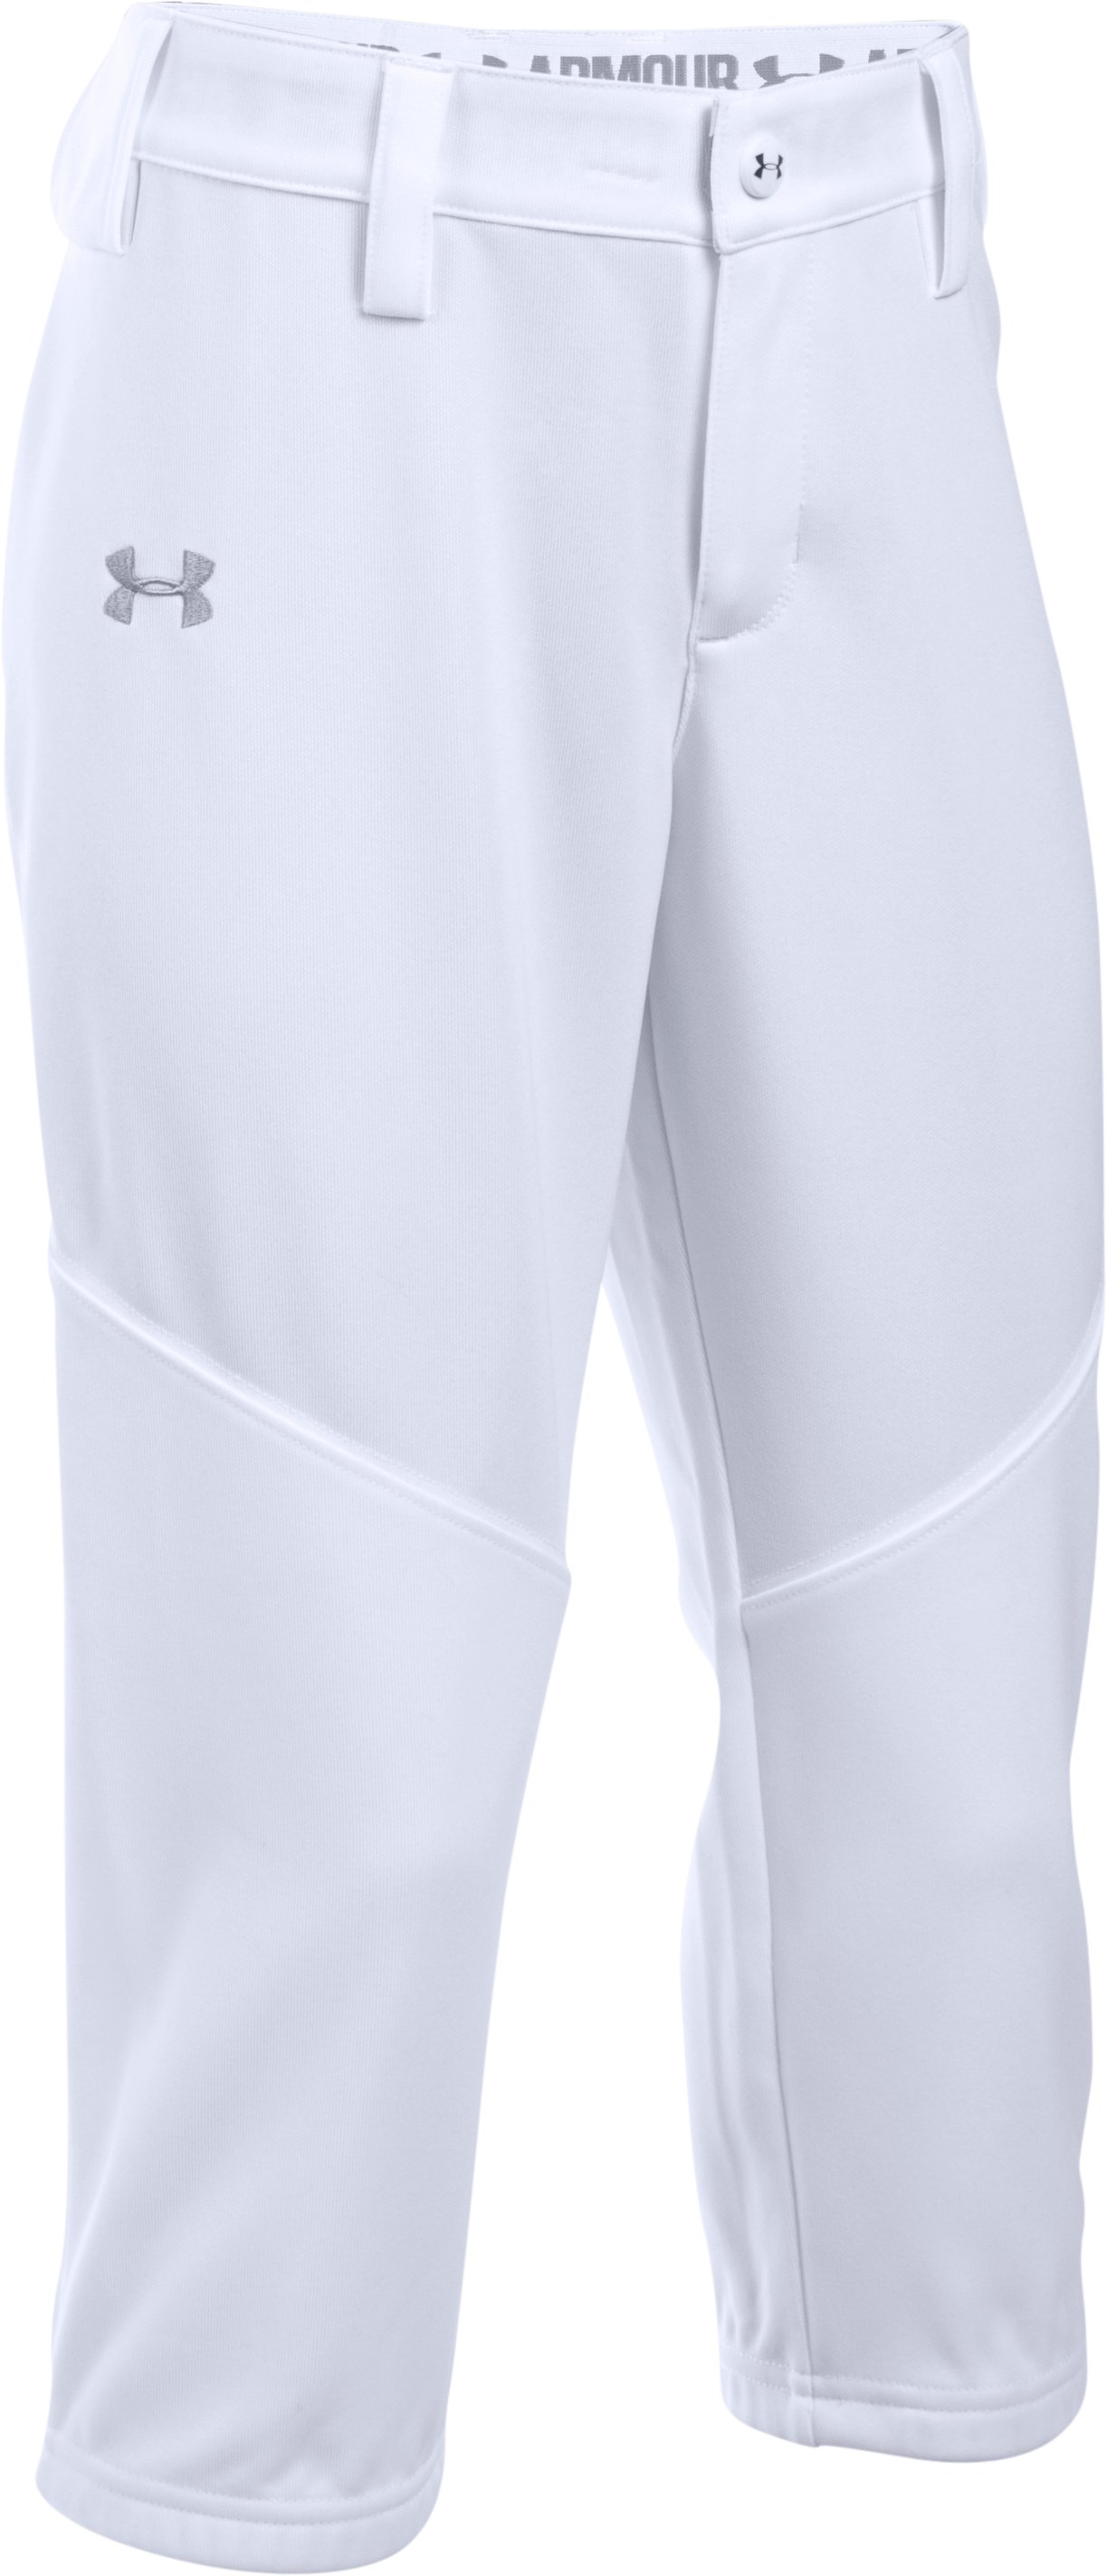 Girls' UA Base Runner Softball Pants, White